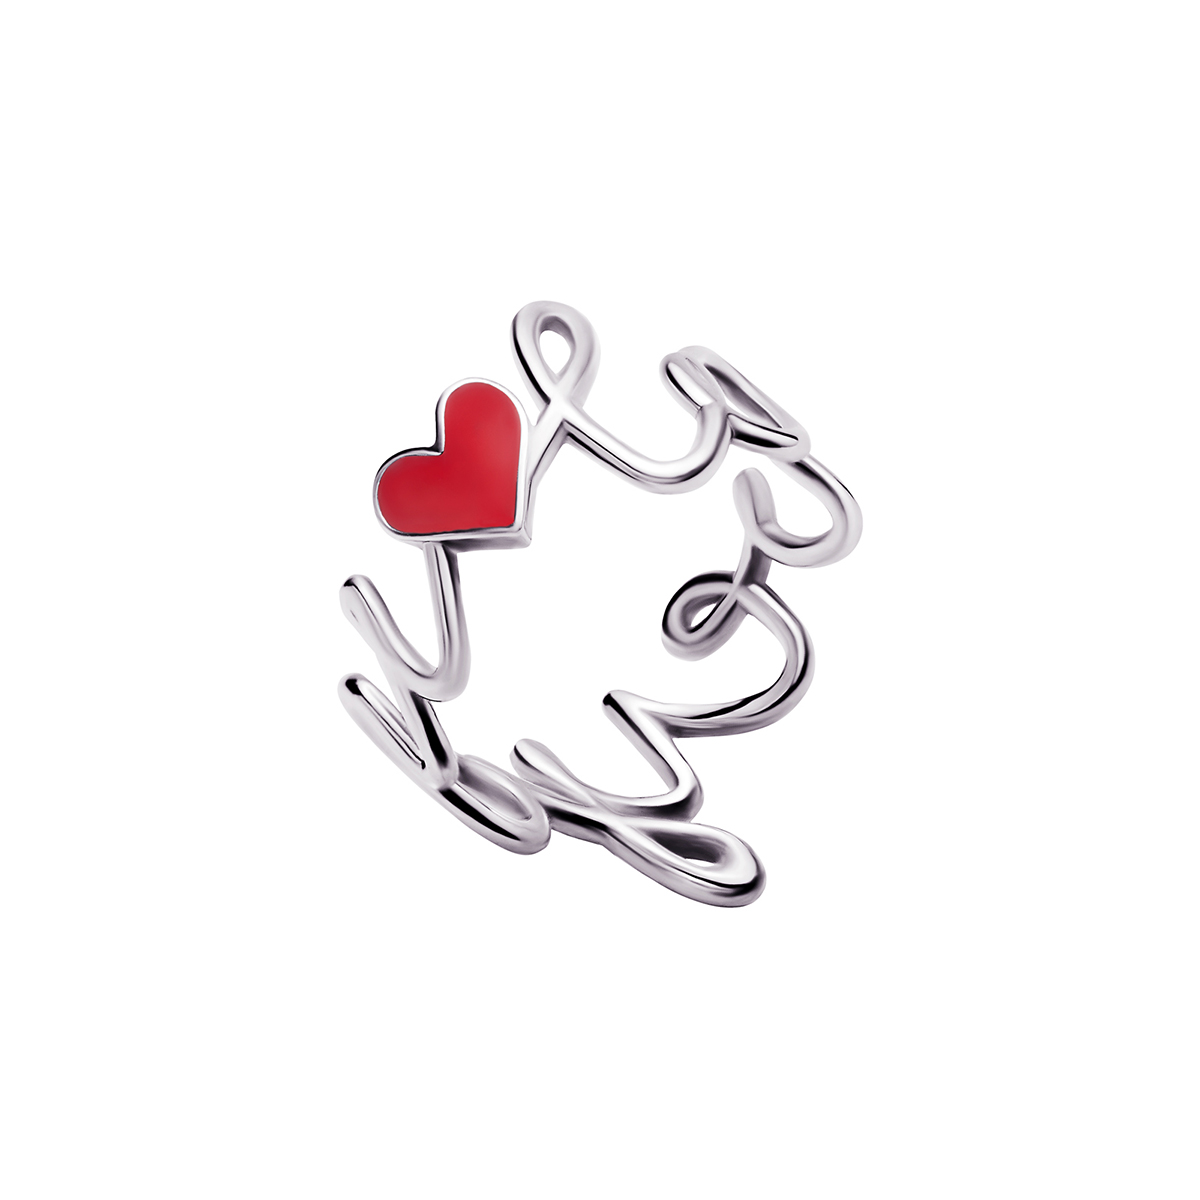 Love You White Gold Enamel Ring by Jewelry Lab on curated-crowd.com